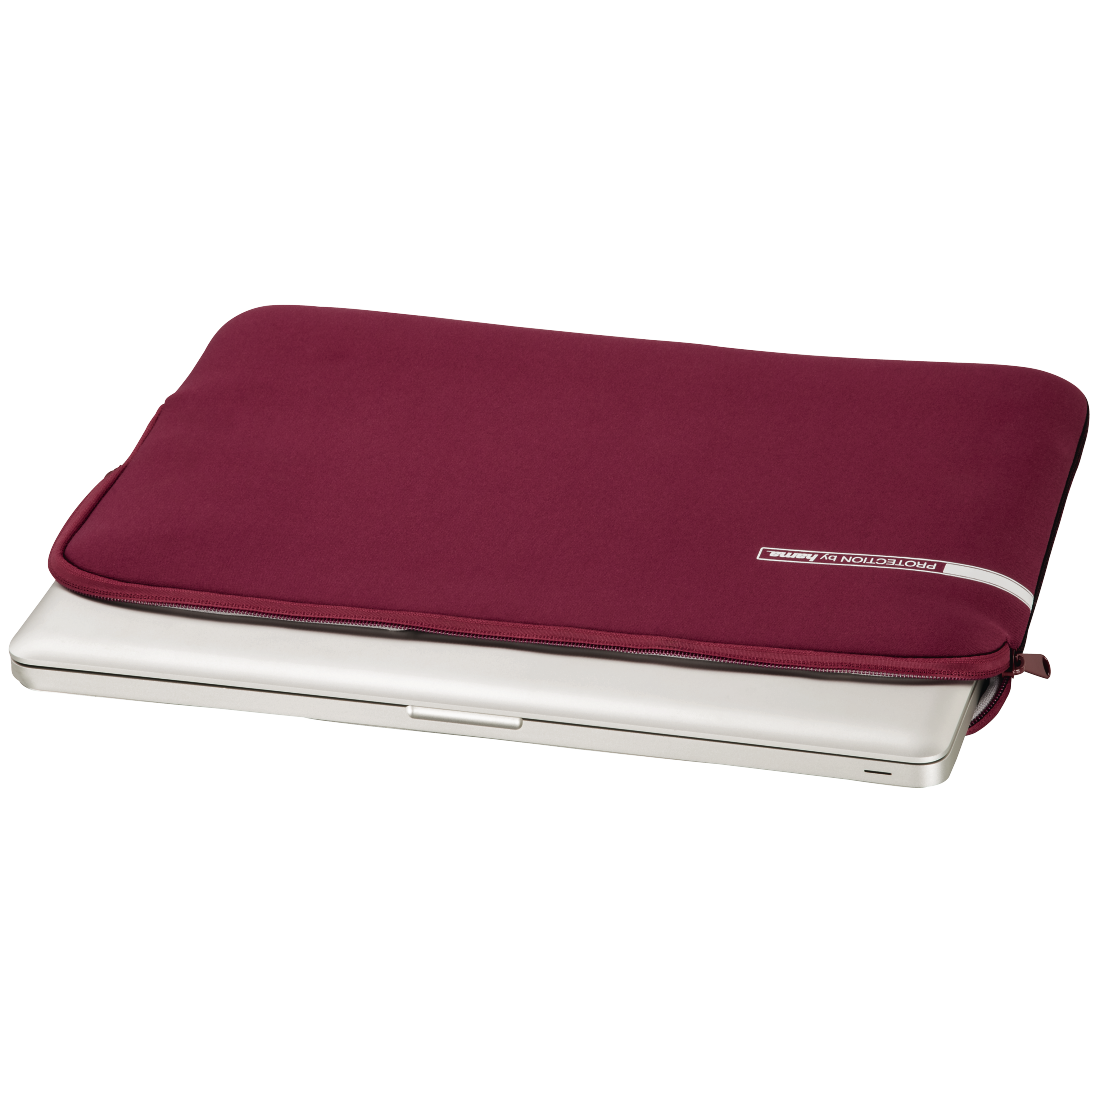 abx3 High-Res Image 3 - Hama, Neoprene Style Notebook Sleeve, up to 34 cm (13.3), burgundy